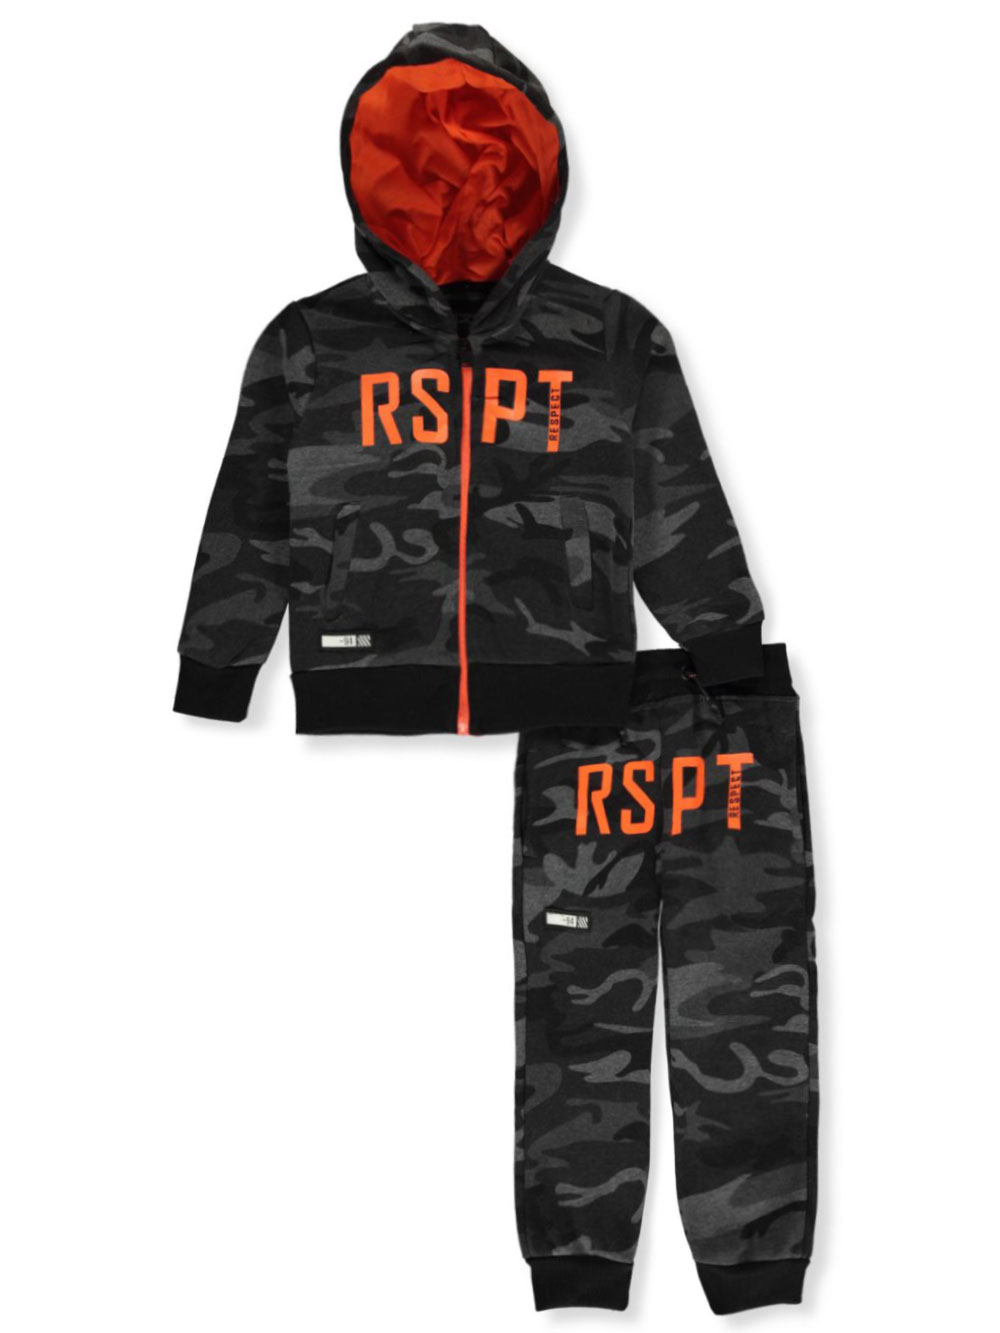 Boys' RSPT 2-Piece Sweatsuit Outfit